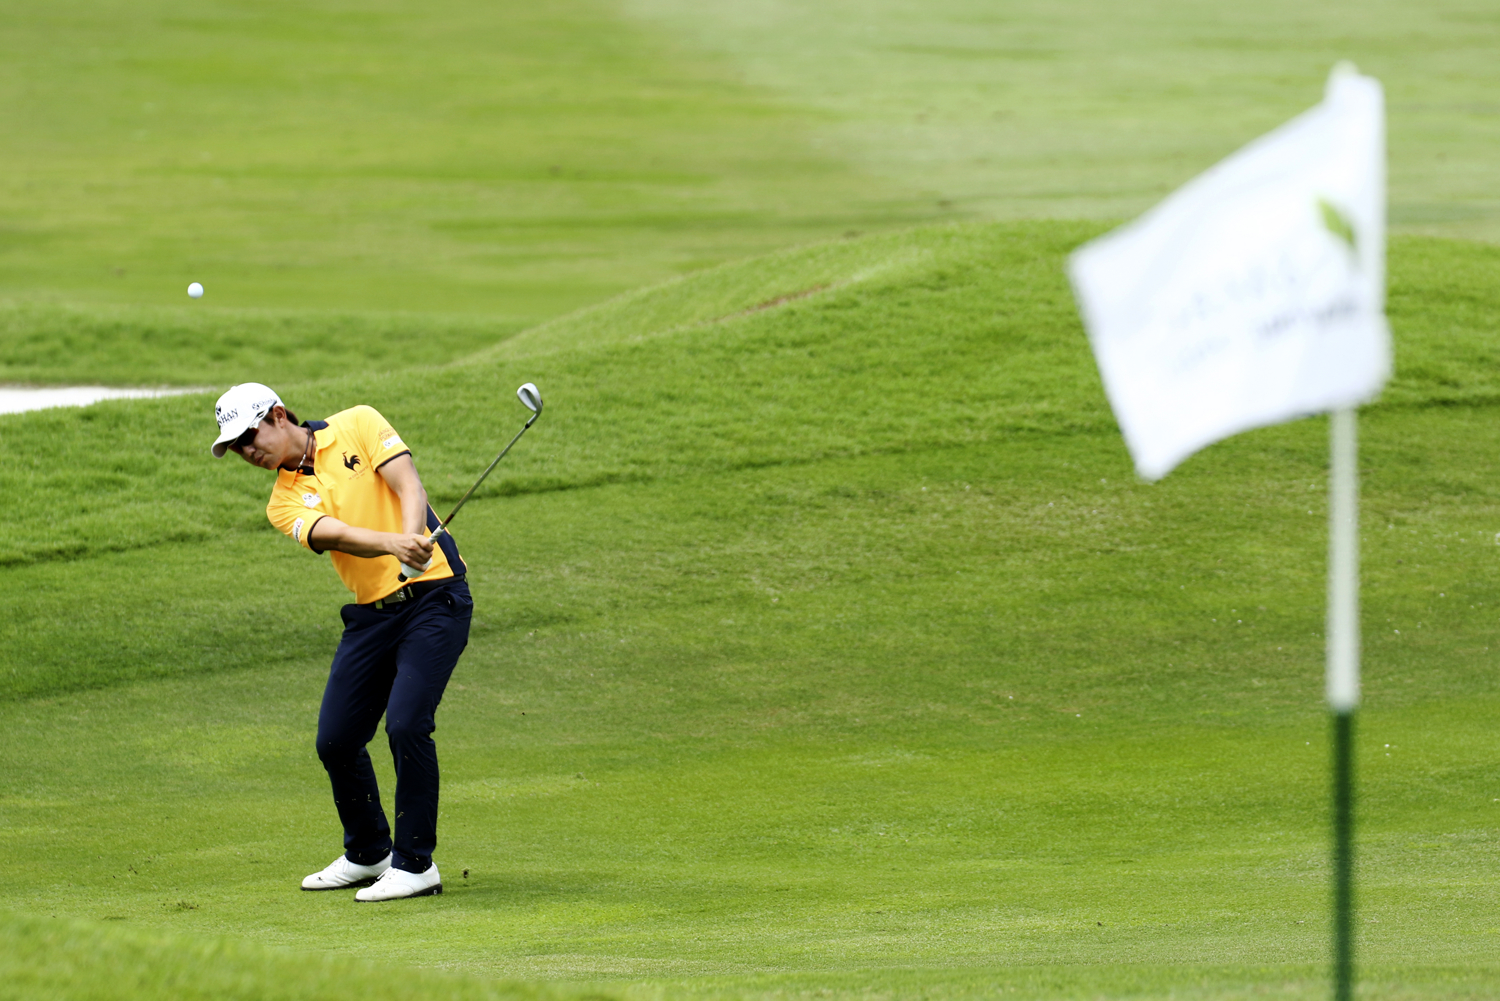 Song Younghan of South Korea hits a shot on the 18th green during the final round of the SMBC Singapore Open golf tournament at Sentosa's Serapong golf course in Singapore January 22, 2017.